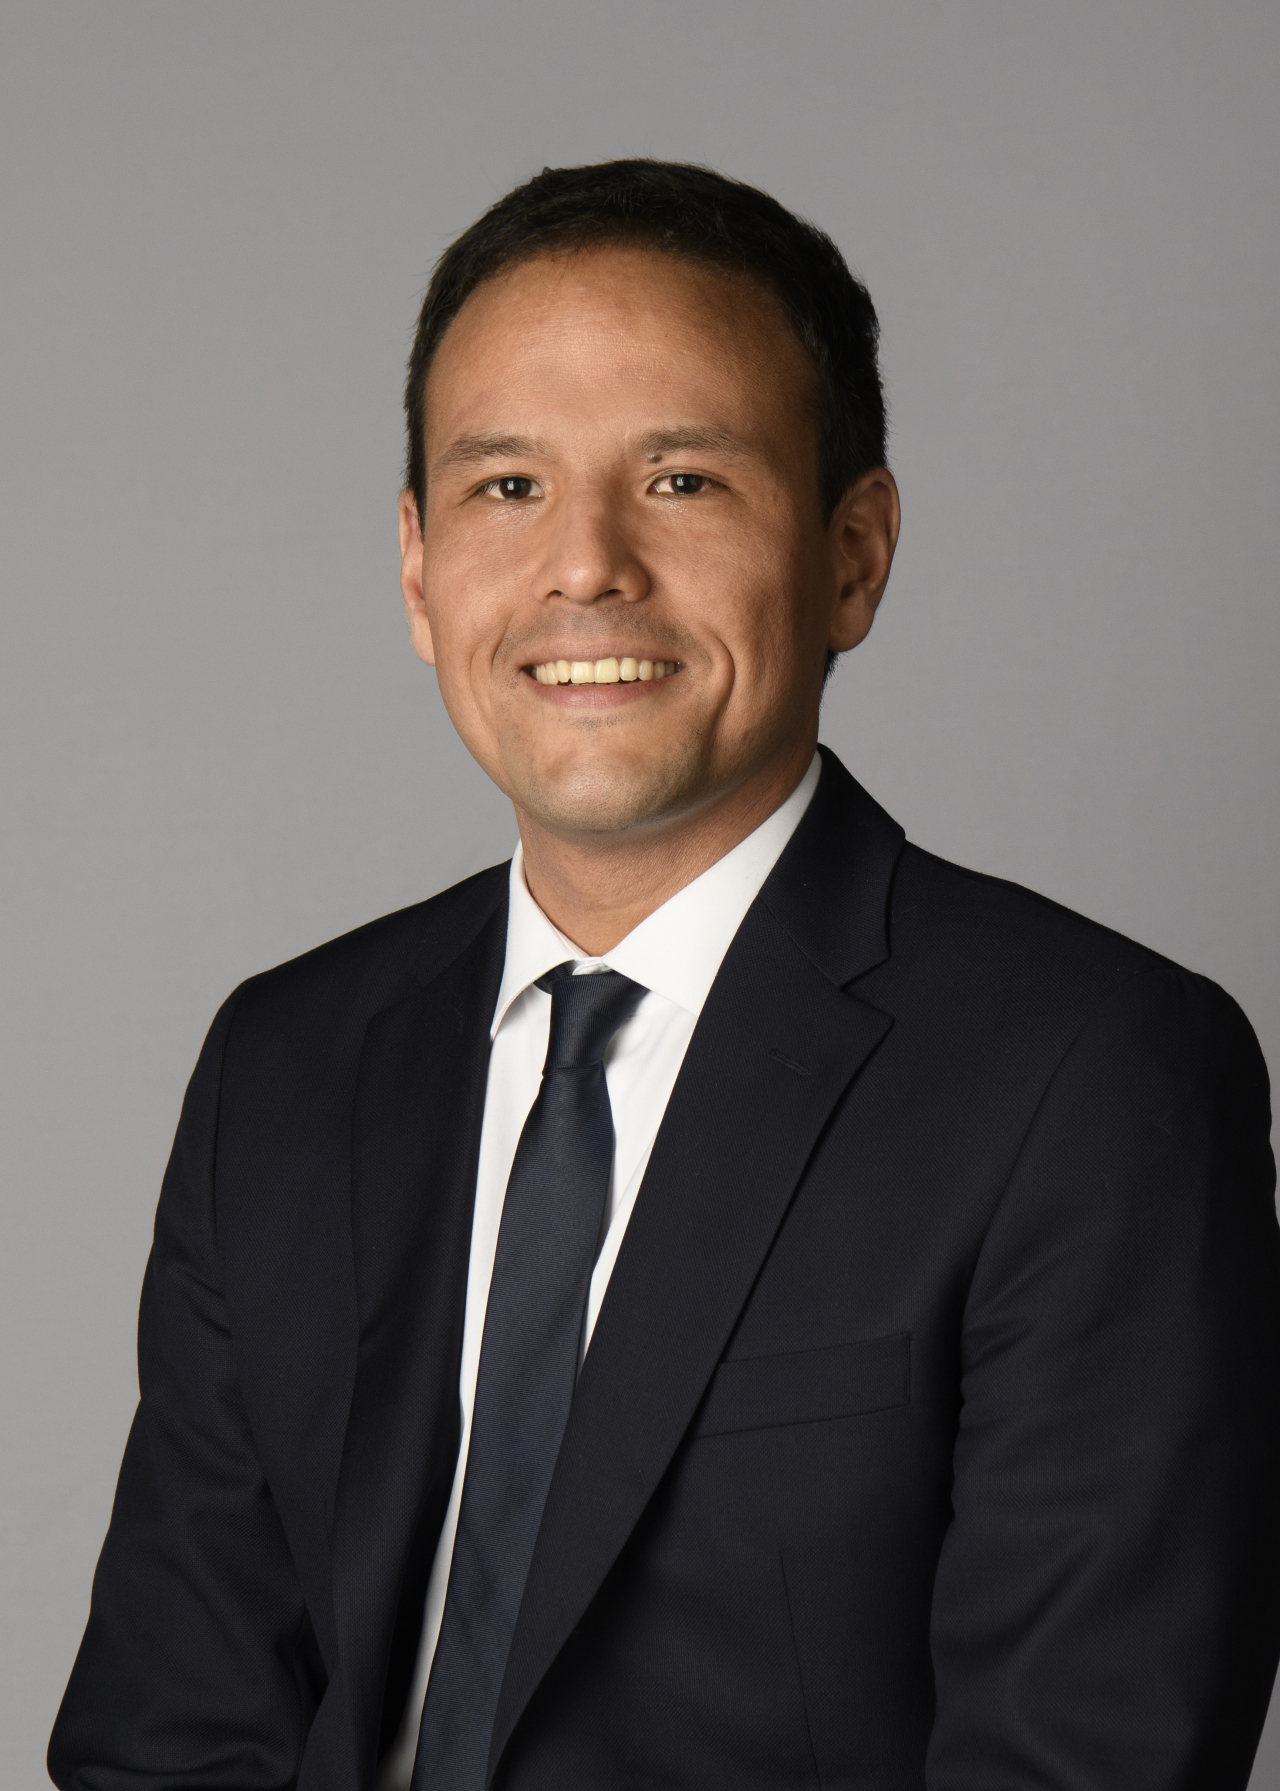 Cedric O, Secretary of State for the Digital Sector of France, will speak at CCF on Aug. 26. (MINEFI)